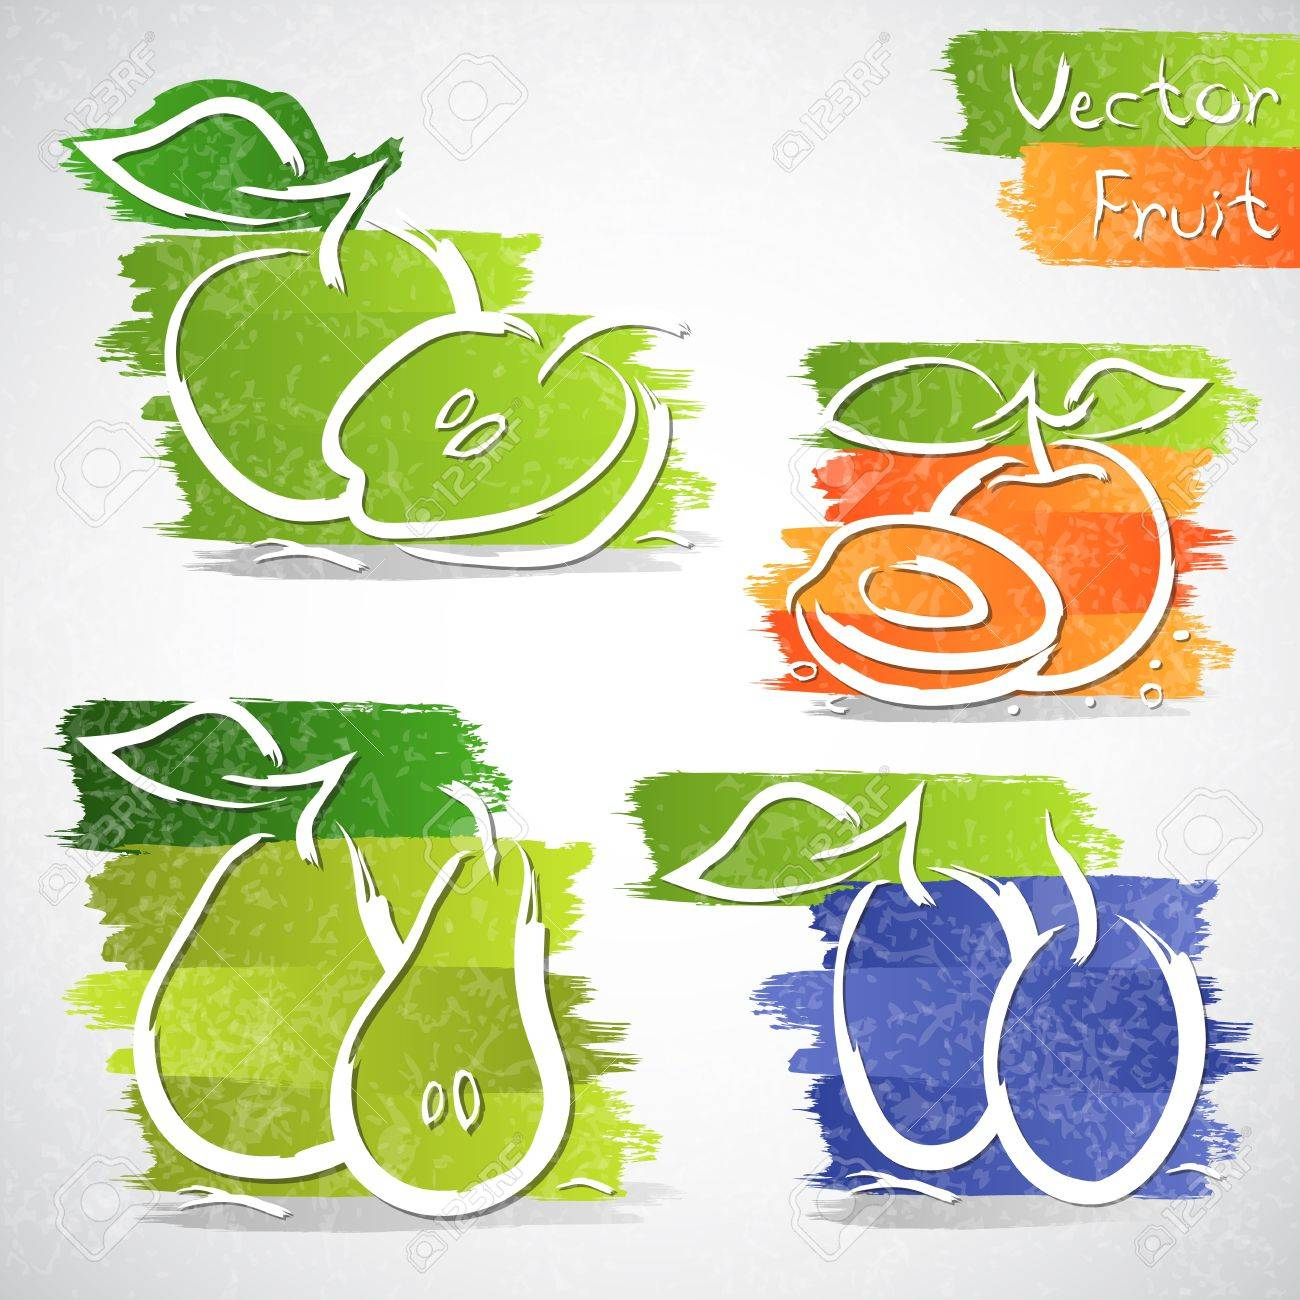 Vector illustration of colorful fruit icon collection Stock Vector - 20341647